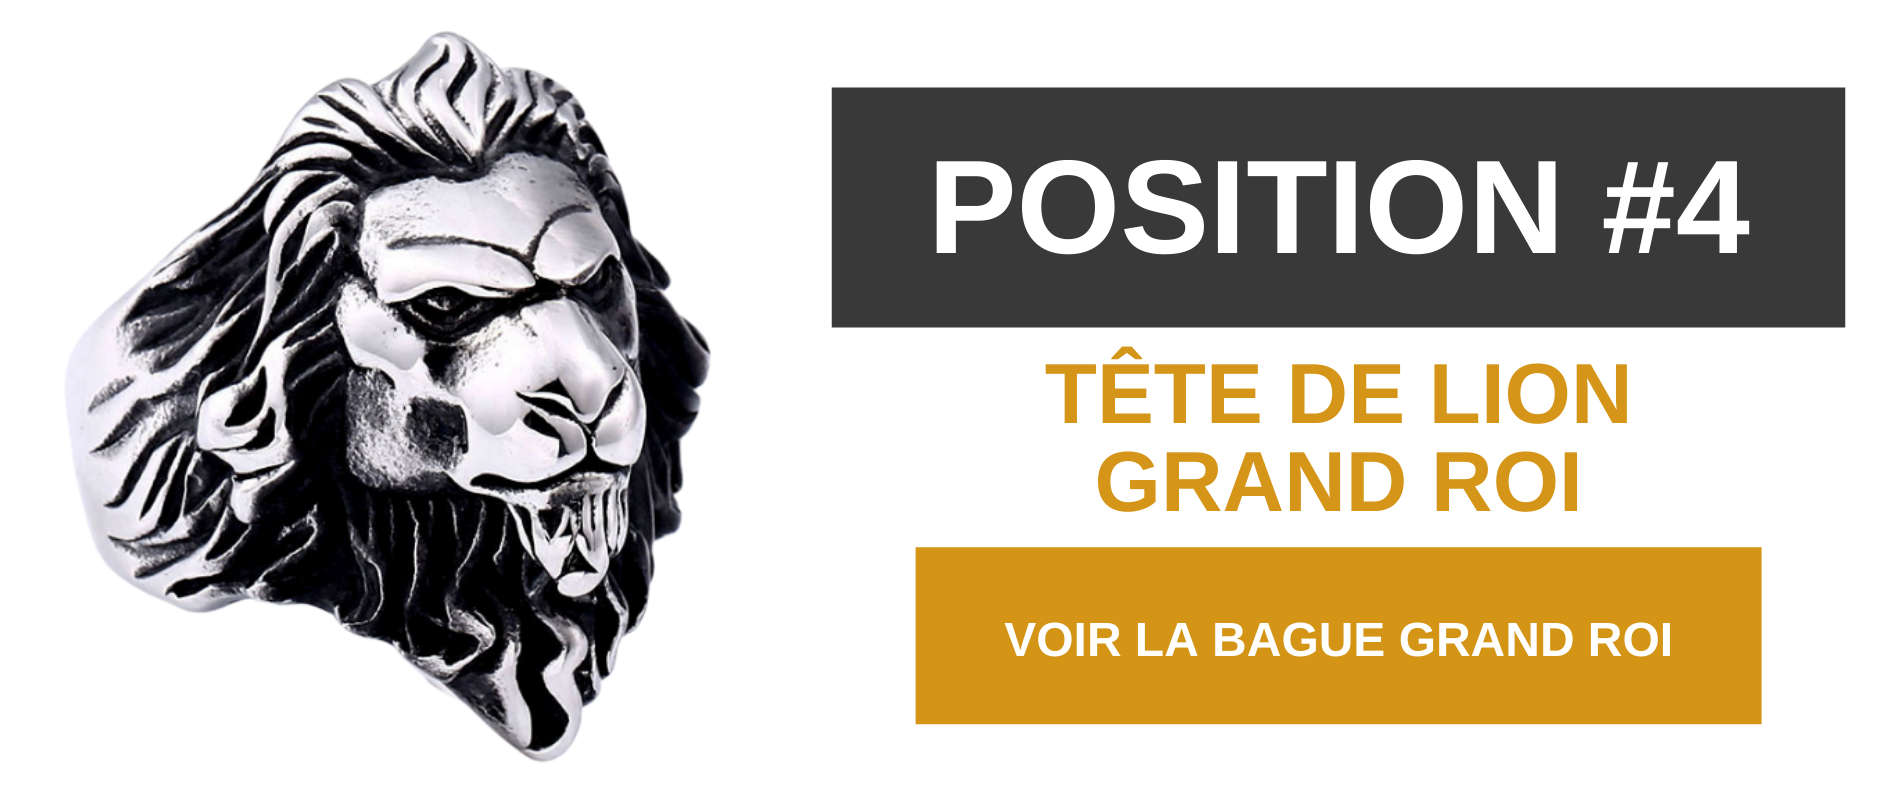 Bague lion grand roi.